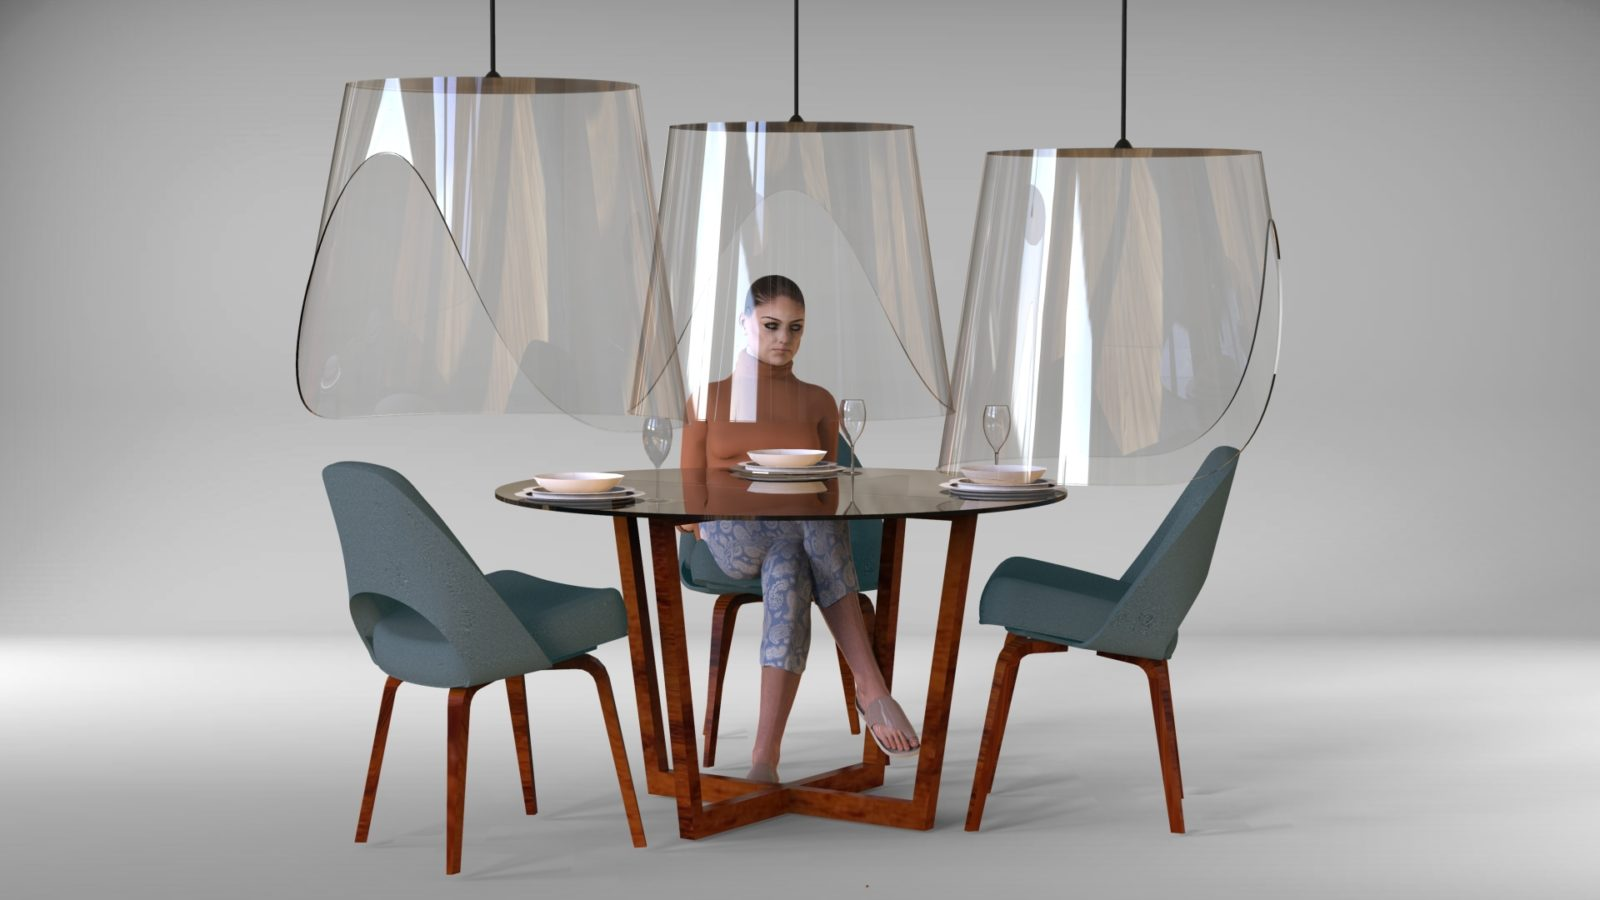 What the future of restaurant design could look like post-pandemic